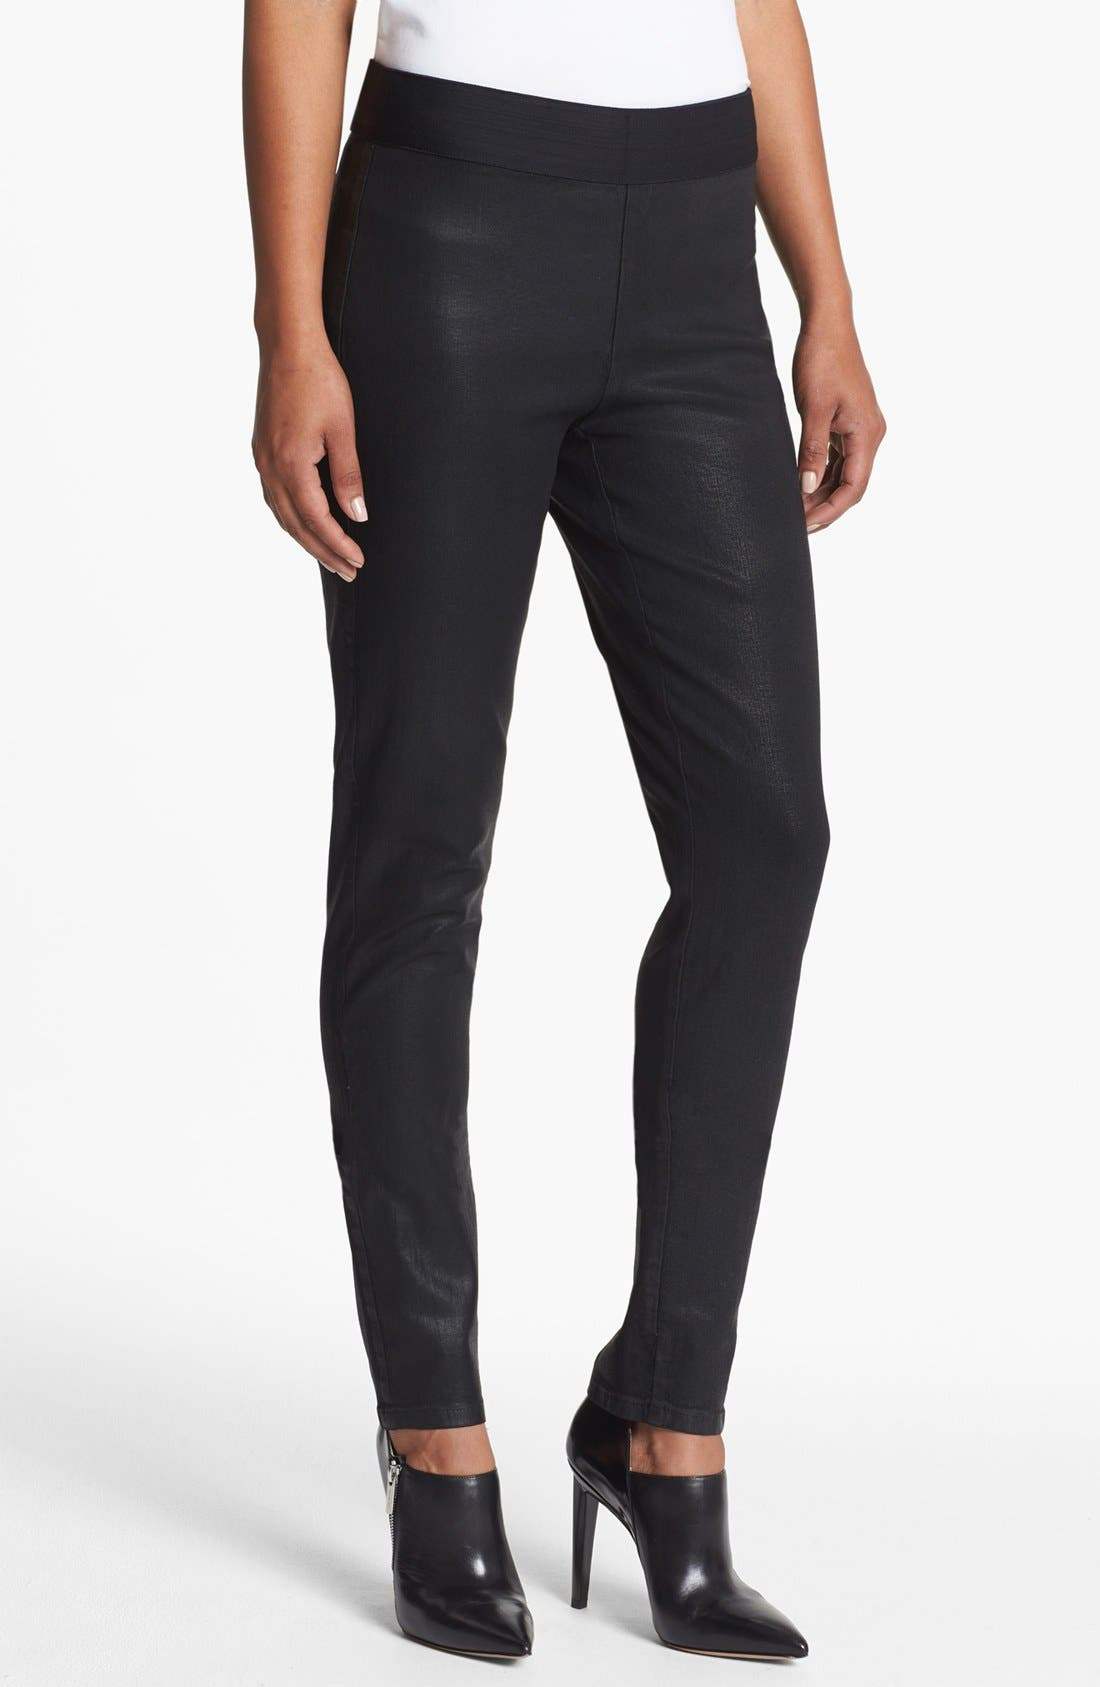 Alternate Image 1 Selected - NYDJ 'Gia' Coated Stretch Pull-On Pants